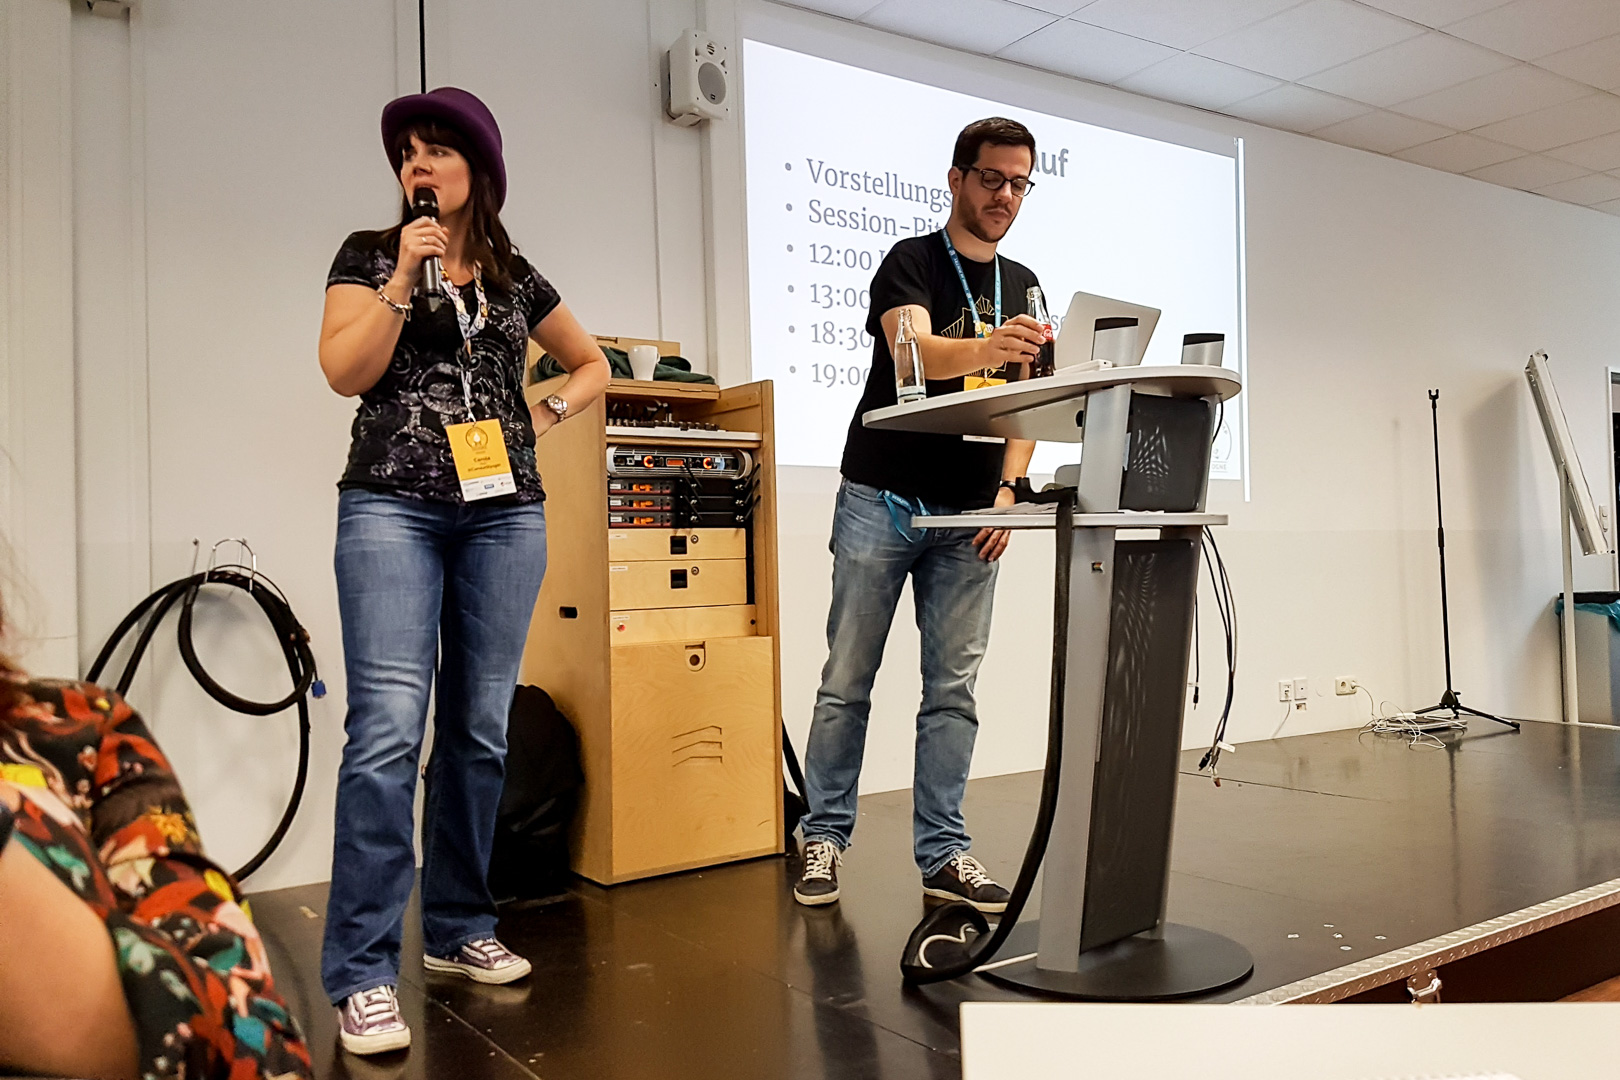 WordCamp Cologne, opening remarks by Carole Olinger and Marc Nilius